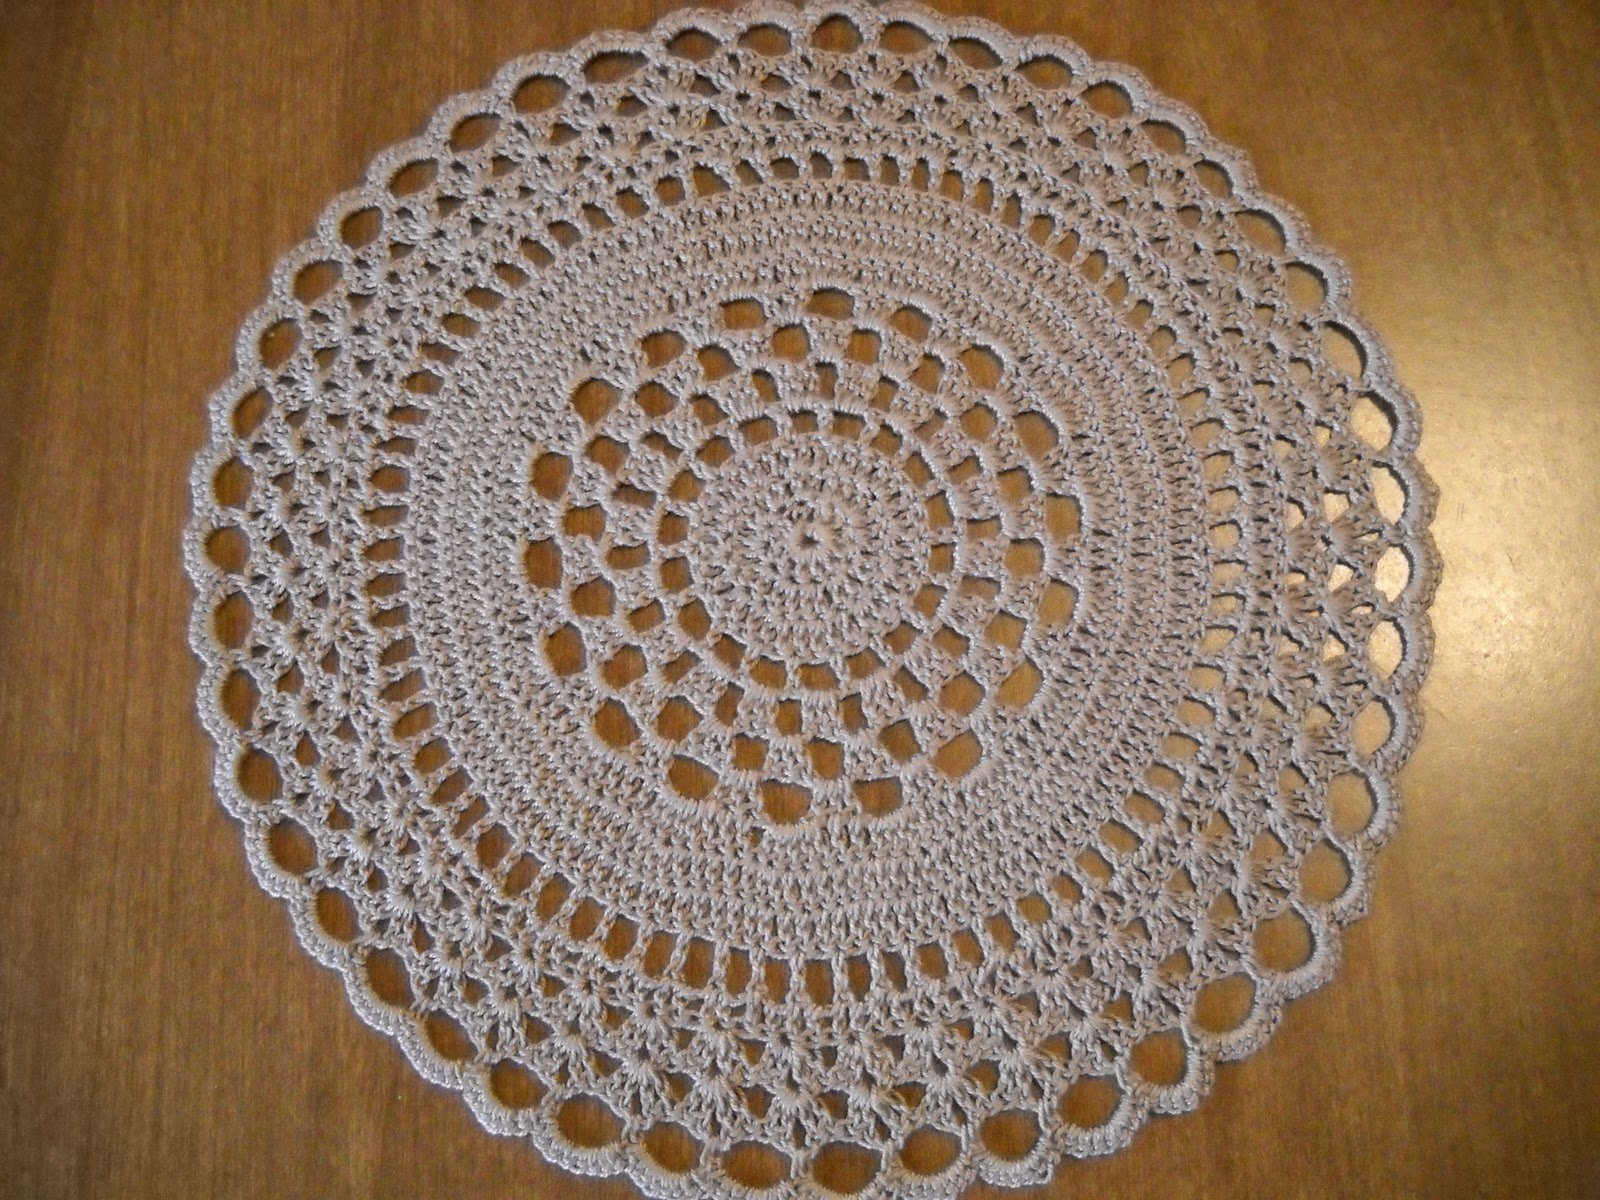 Crocheting Rounds : Easy Crochet Round Doily Pattern